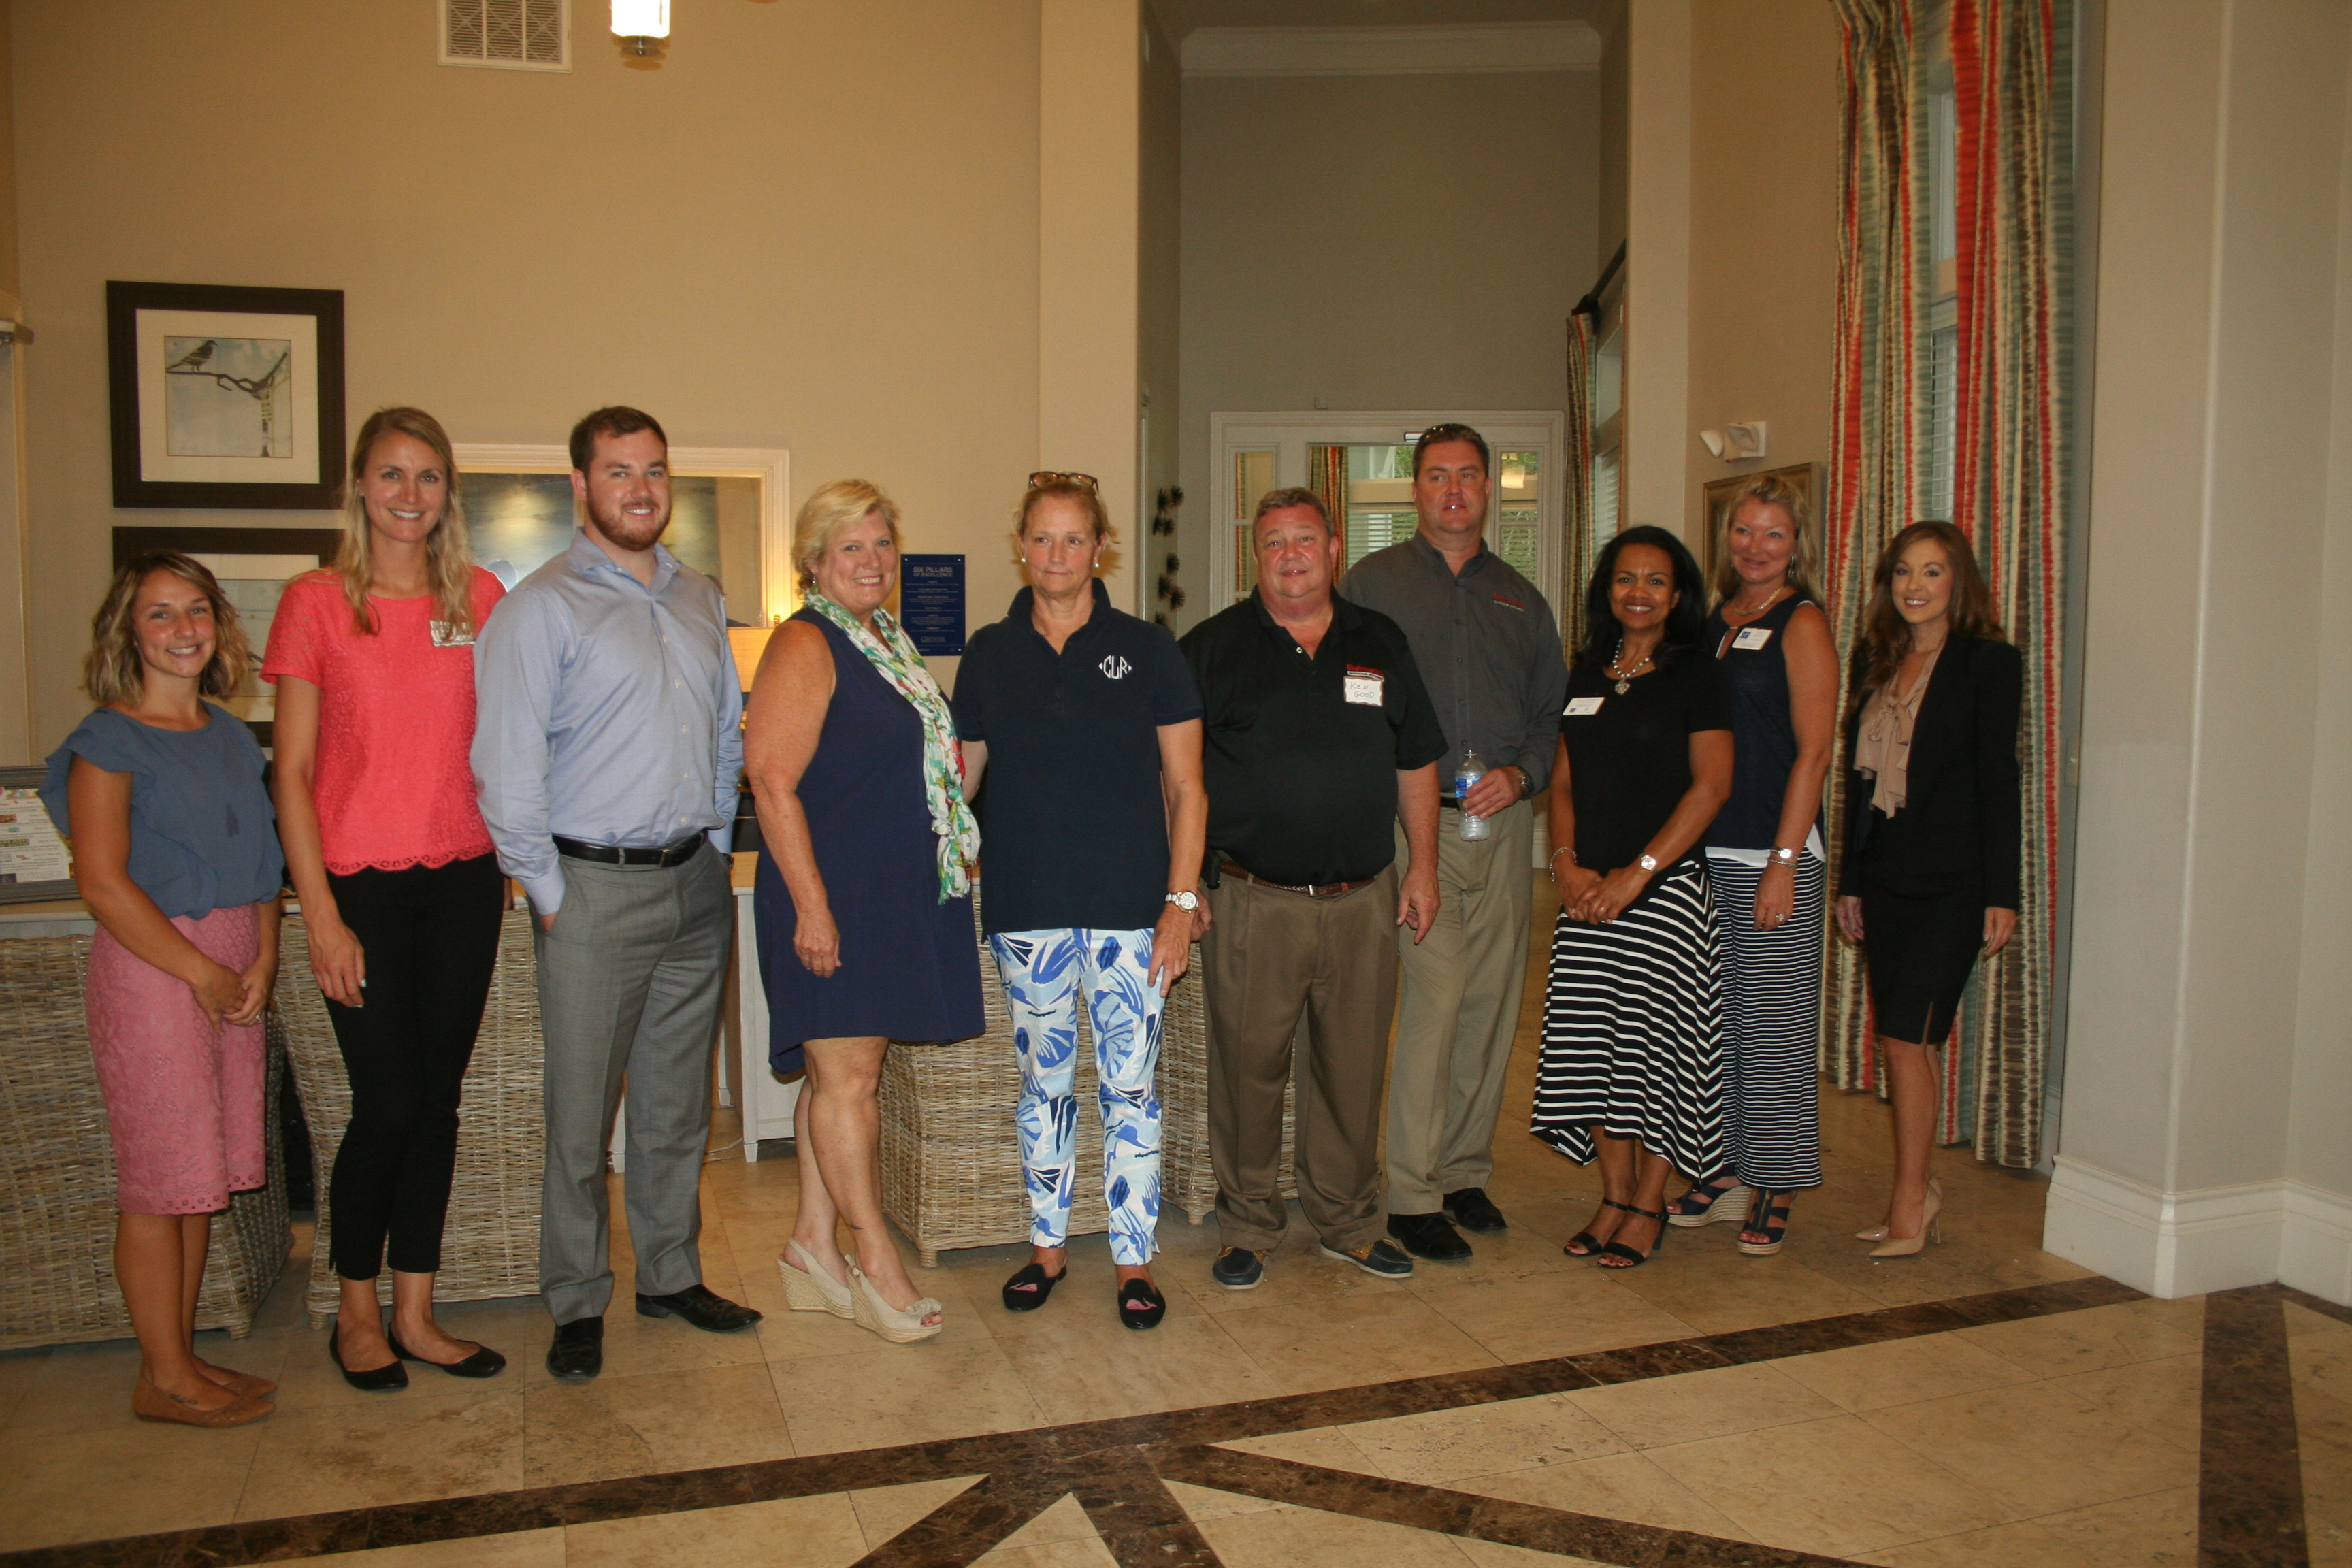 The DIBA Block Party at Greystar's Daniel Island Village on June 29 was sponsored by Chase Payne of Payne Law Firm, Ken Good of Palmetto Outdoor Kitchens, Kevin Smith of ServPro, Nellie Lucado of Monograms Daniel Island and Summit Place of Daniel Island.